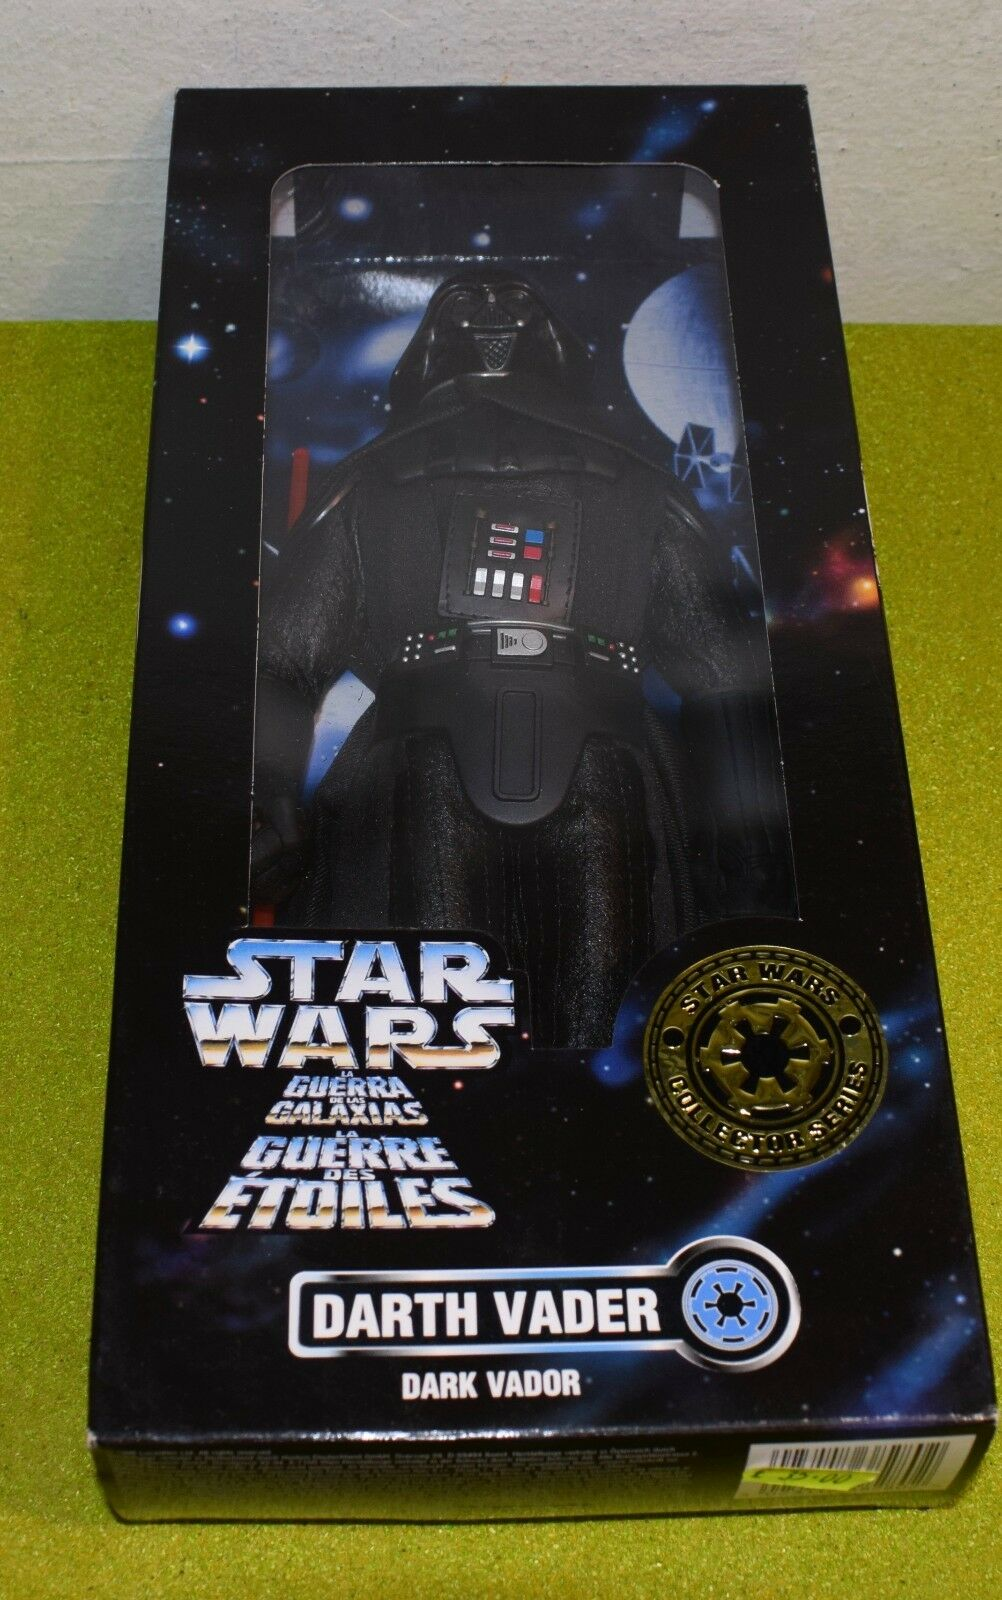 KENNER STAR WARS COLLECTOR SERIES DARTH VADER 1 6 SCALE 12